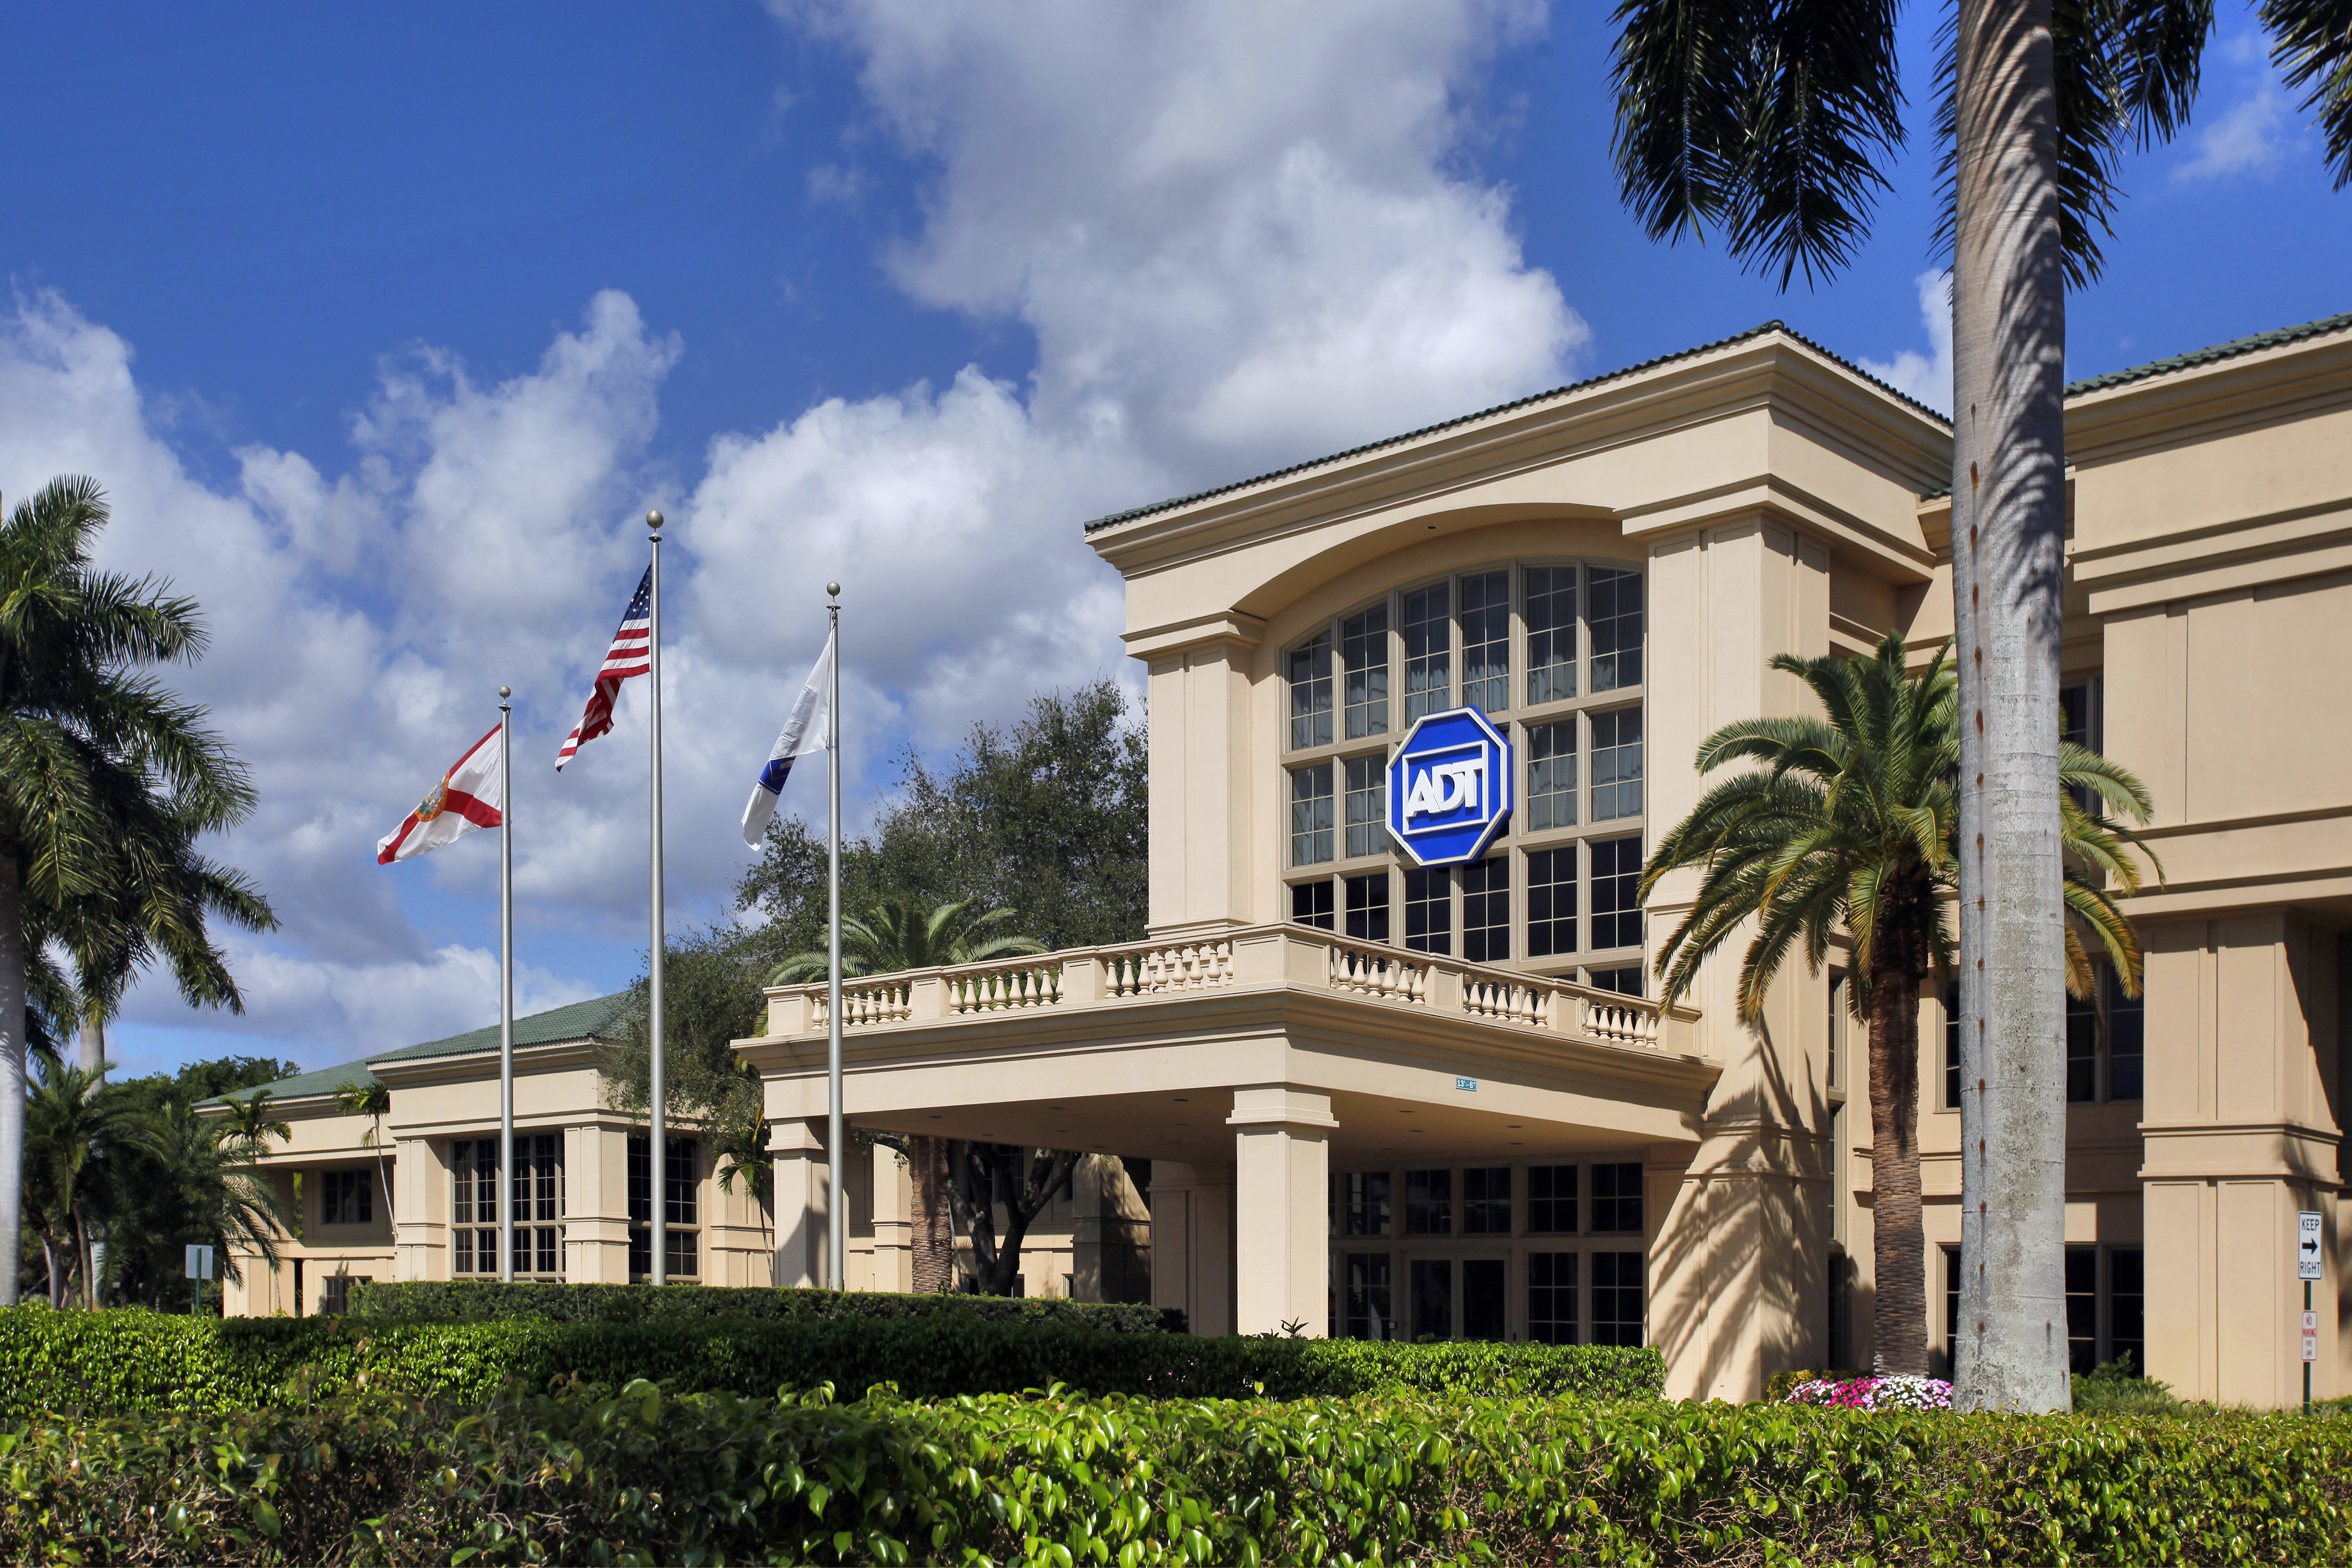 <strong>ADT Global Headquarters</strong><br> Boca Raton, FL